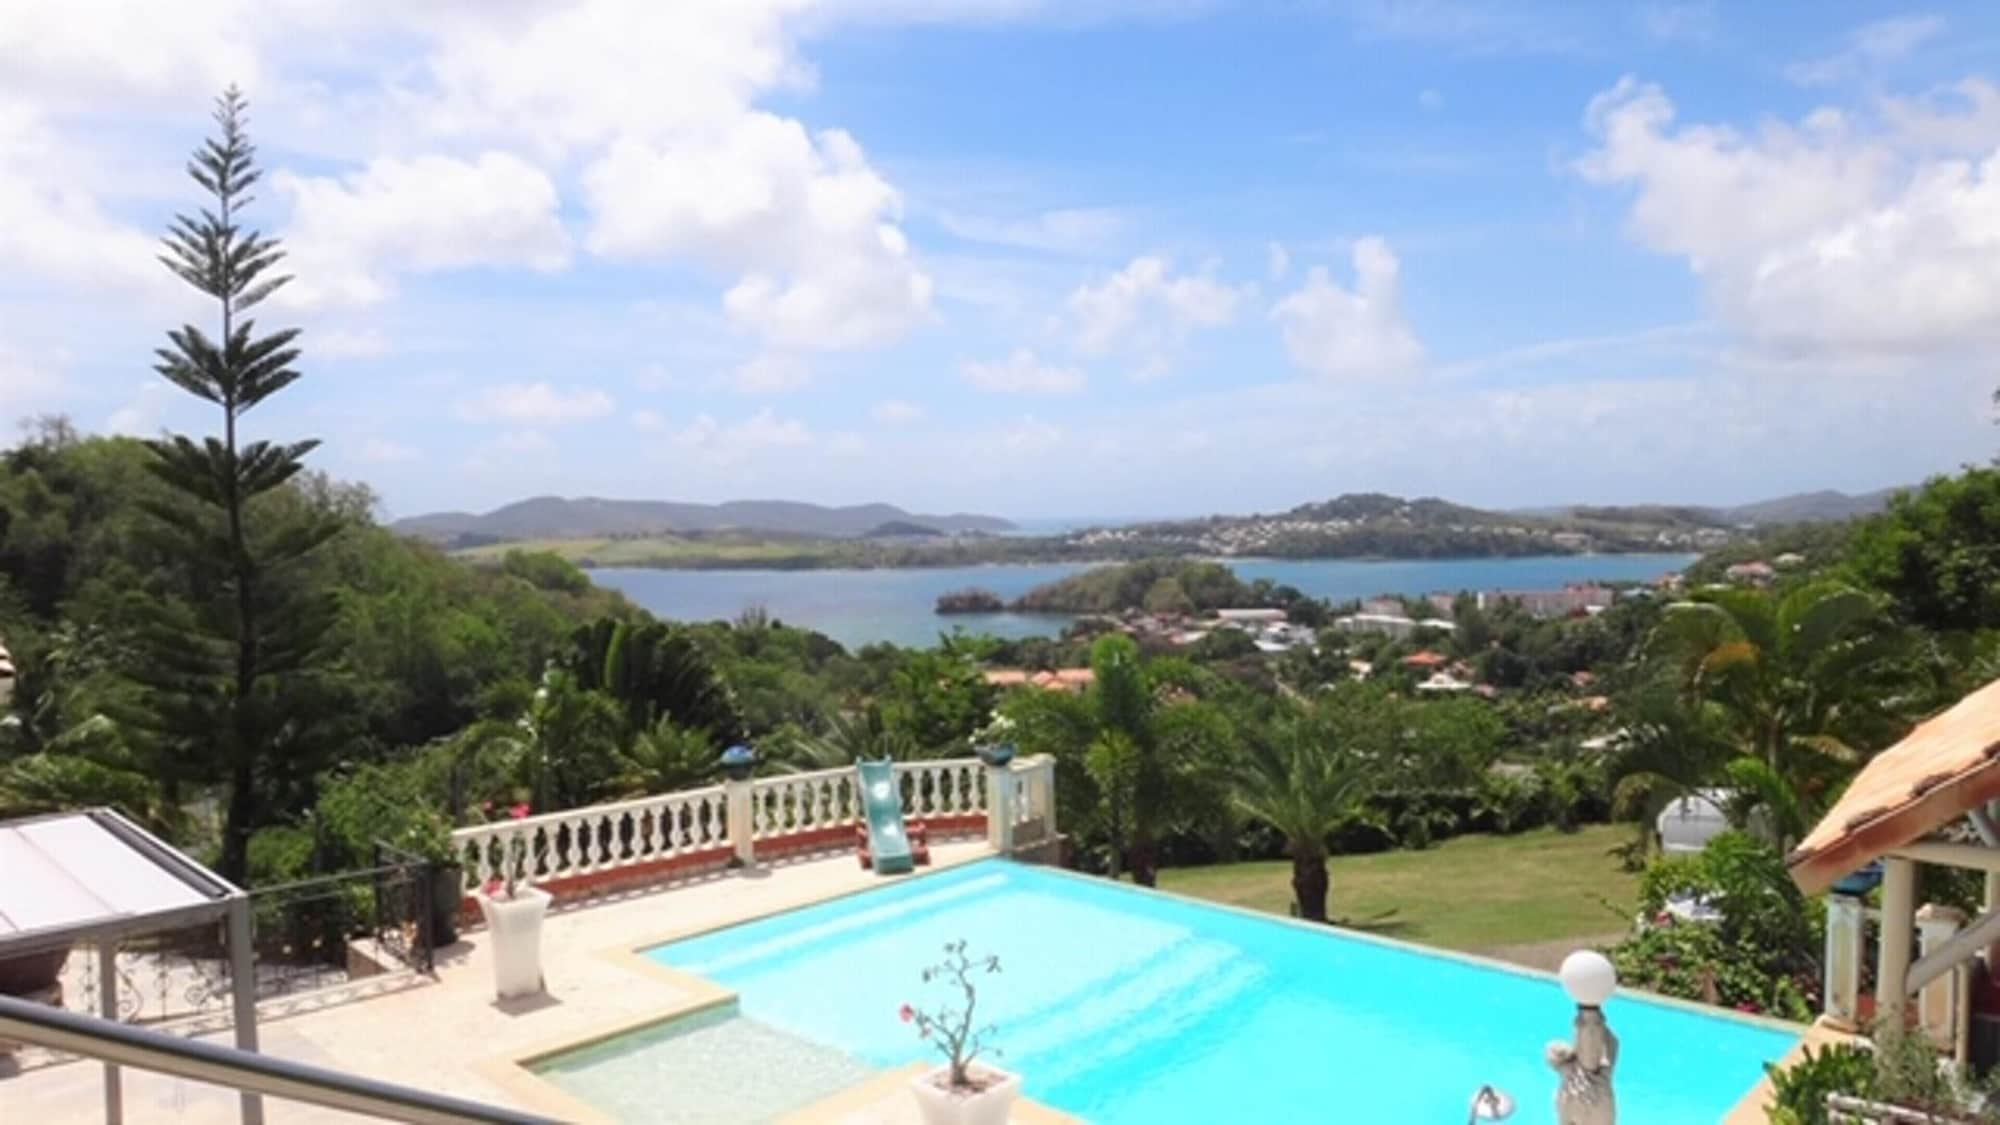 House With 2 Bedrooms in La Trinité, With Wonderful sea View, Shared Pool, Enclosed Garden - 2 km From the Beach, La Trinité